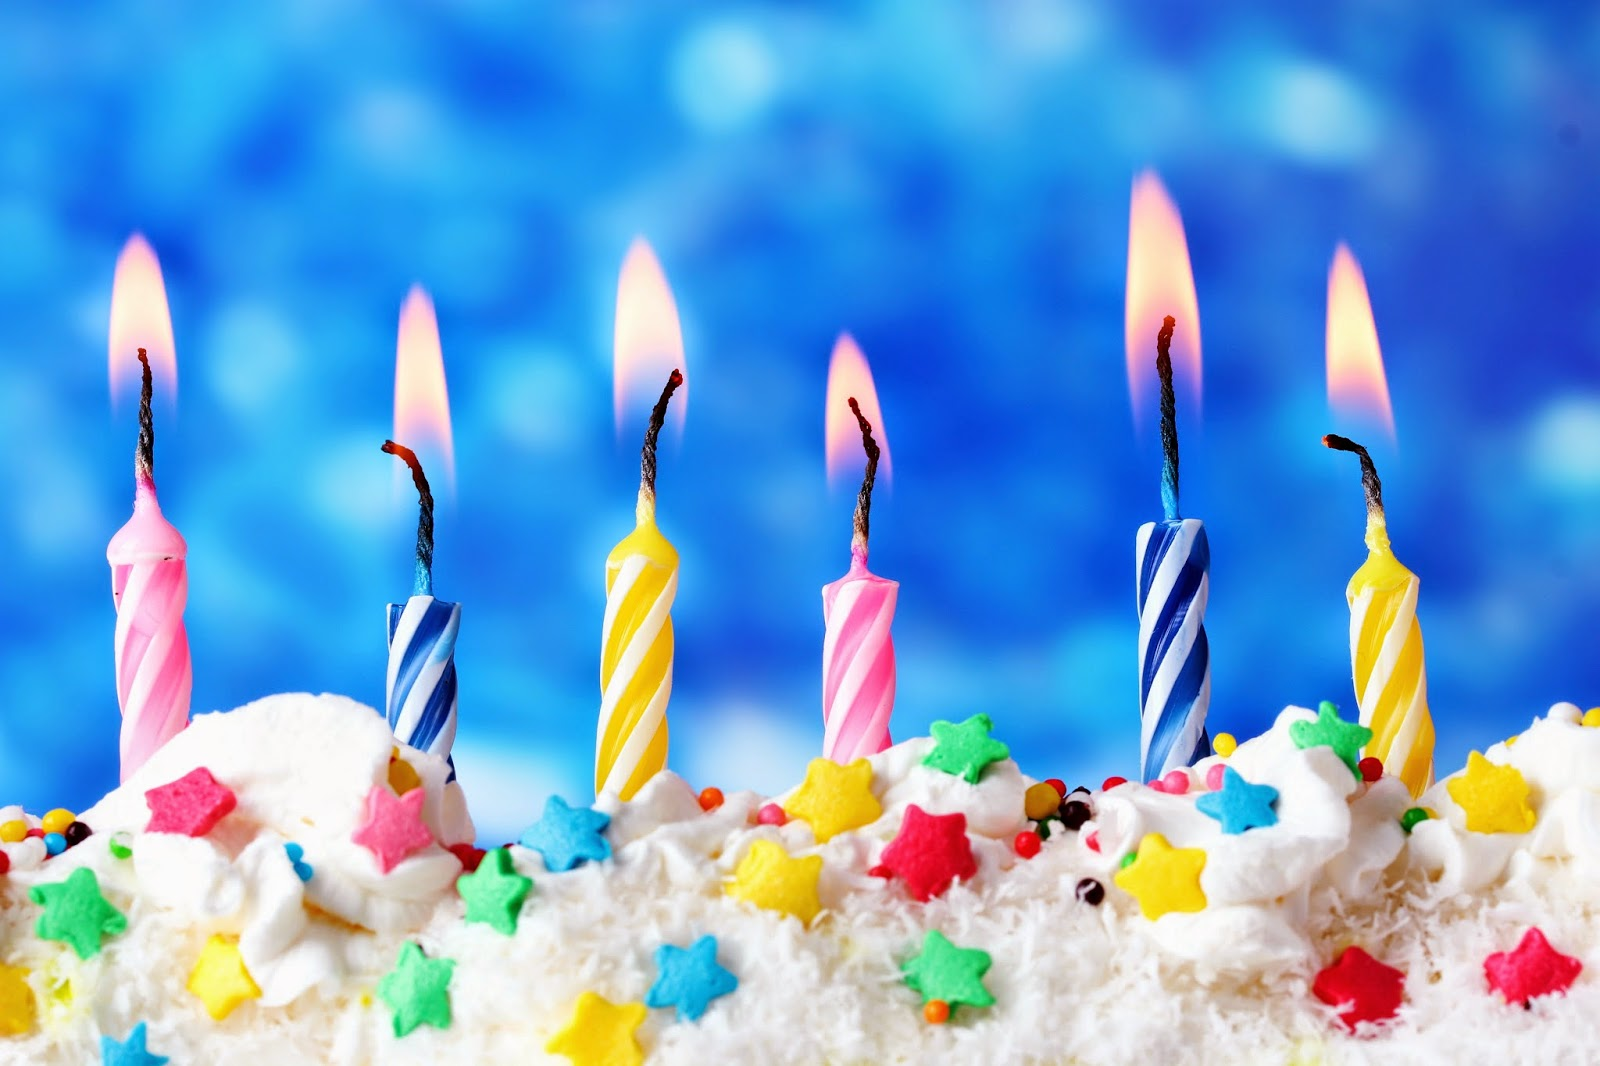 candles-lights-happy-birthday-wallpapers-hd-pics-5180x3453-